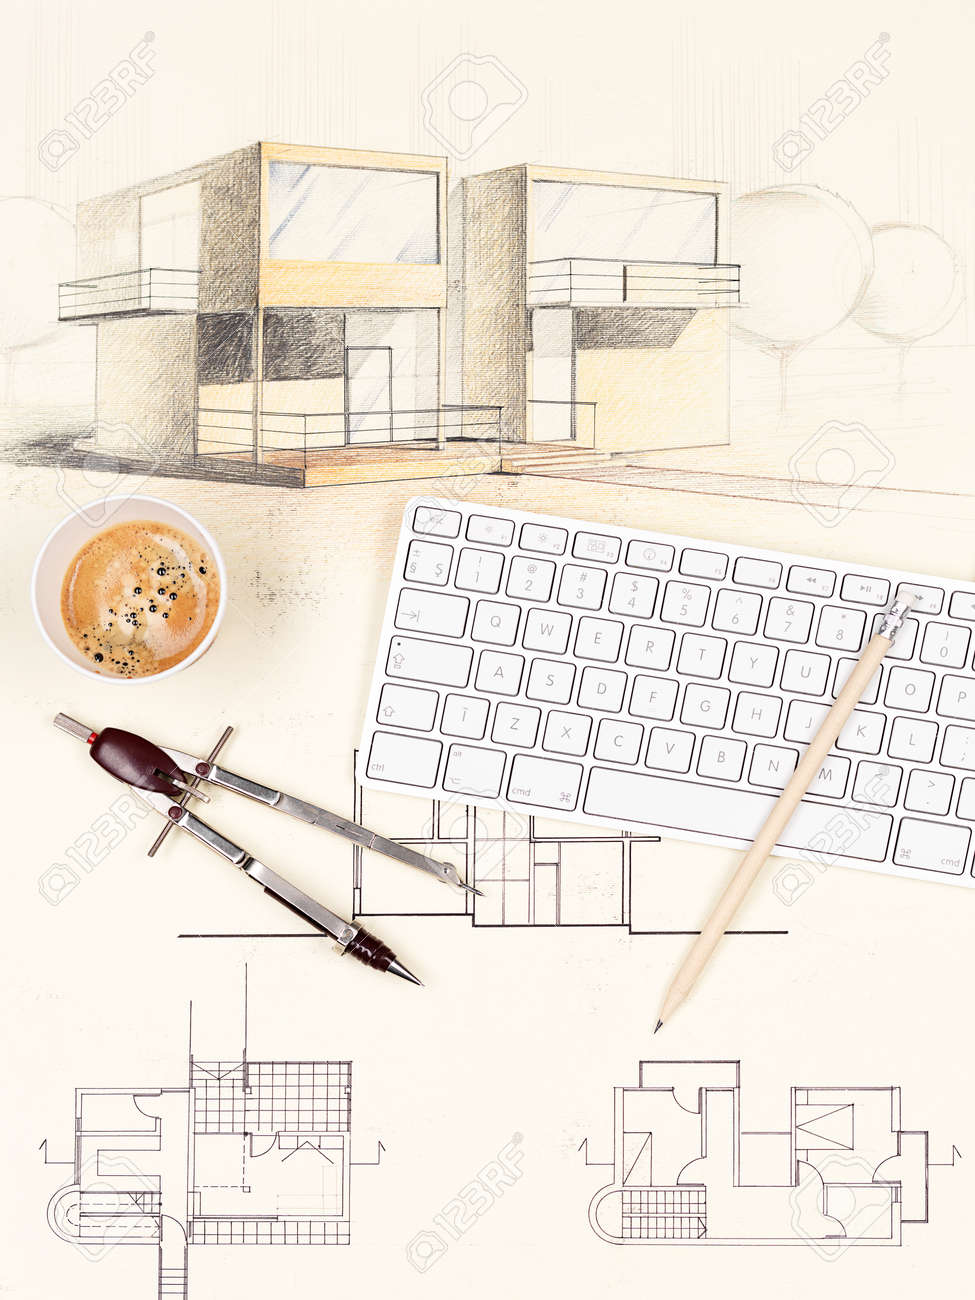 ^ rchitectural Blueprint Of Modern House, With omputer Keyboard ...